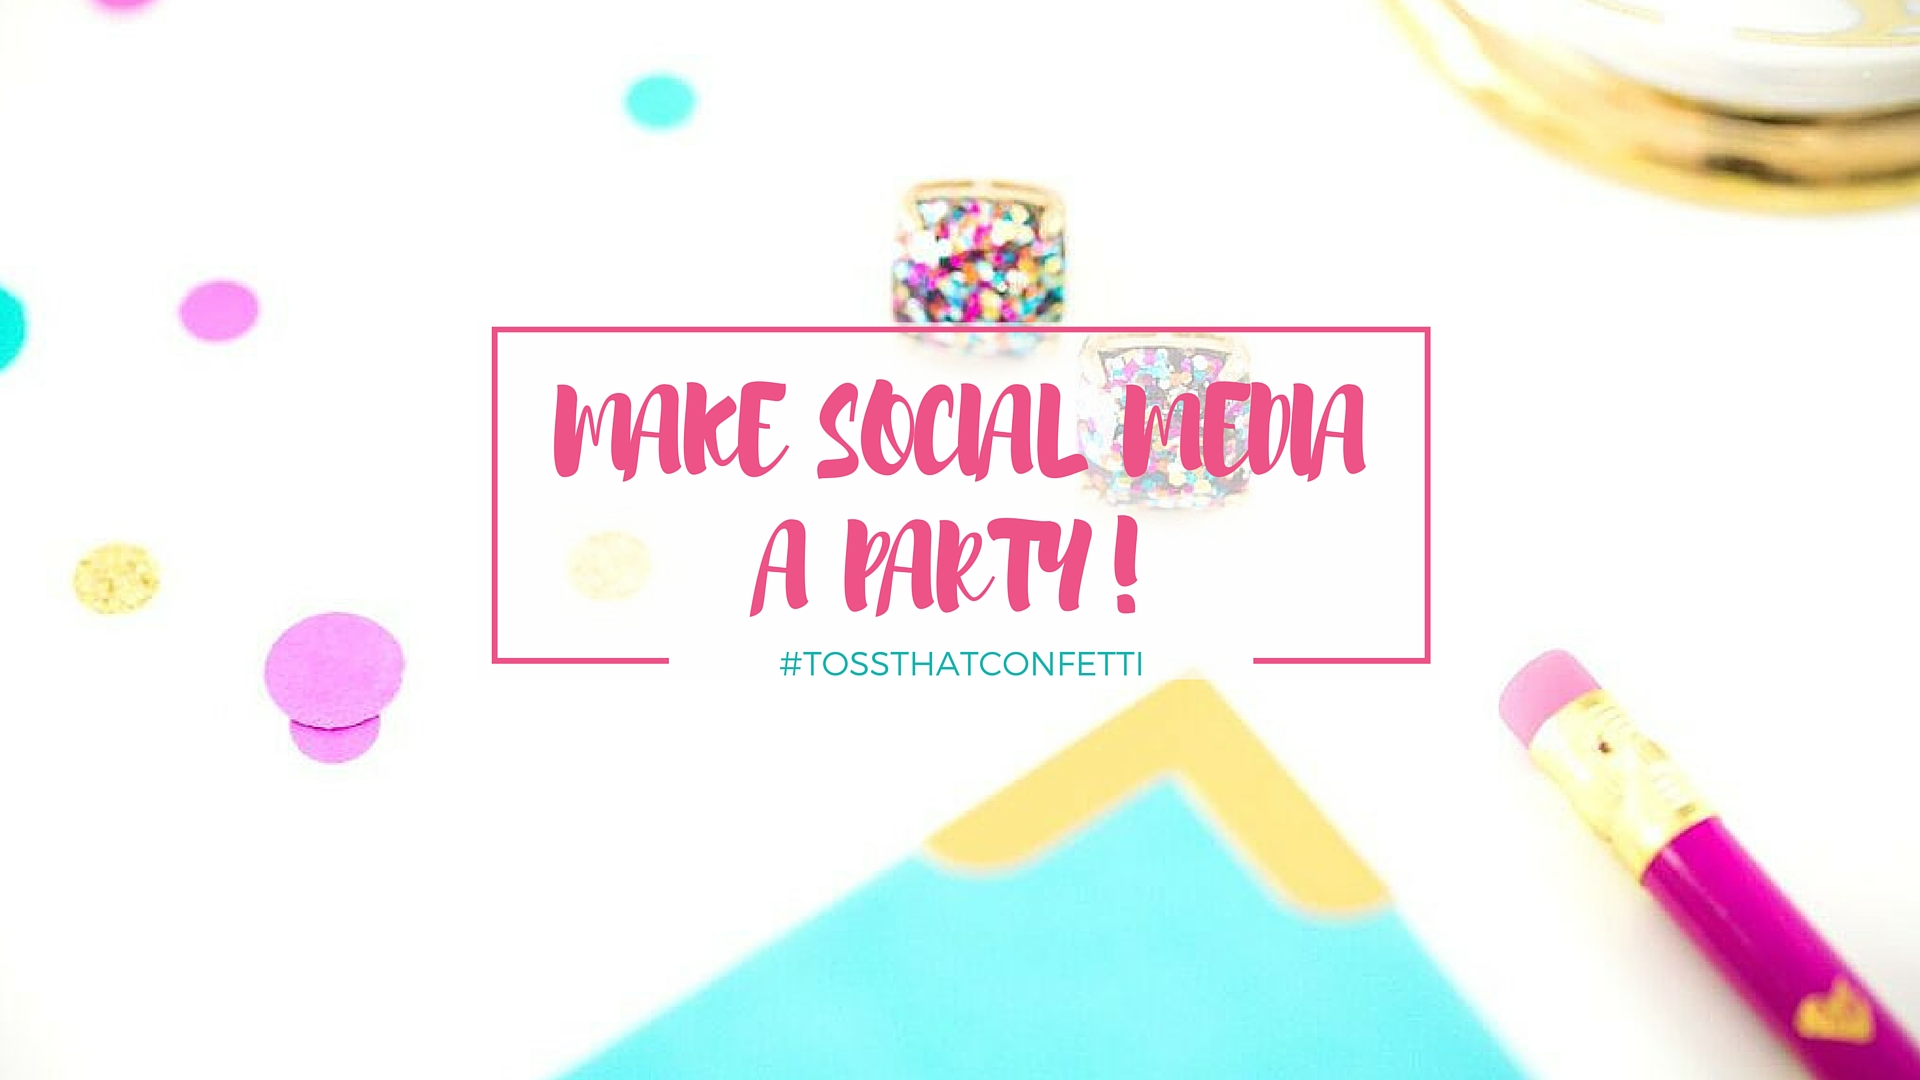 MAKE-SOCIAL-MEDIA-A-PARTY-COVER-PHOTO